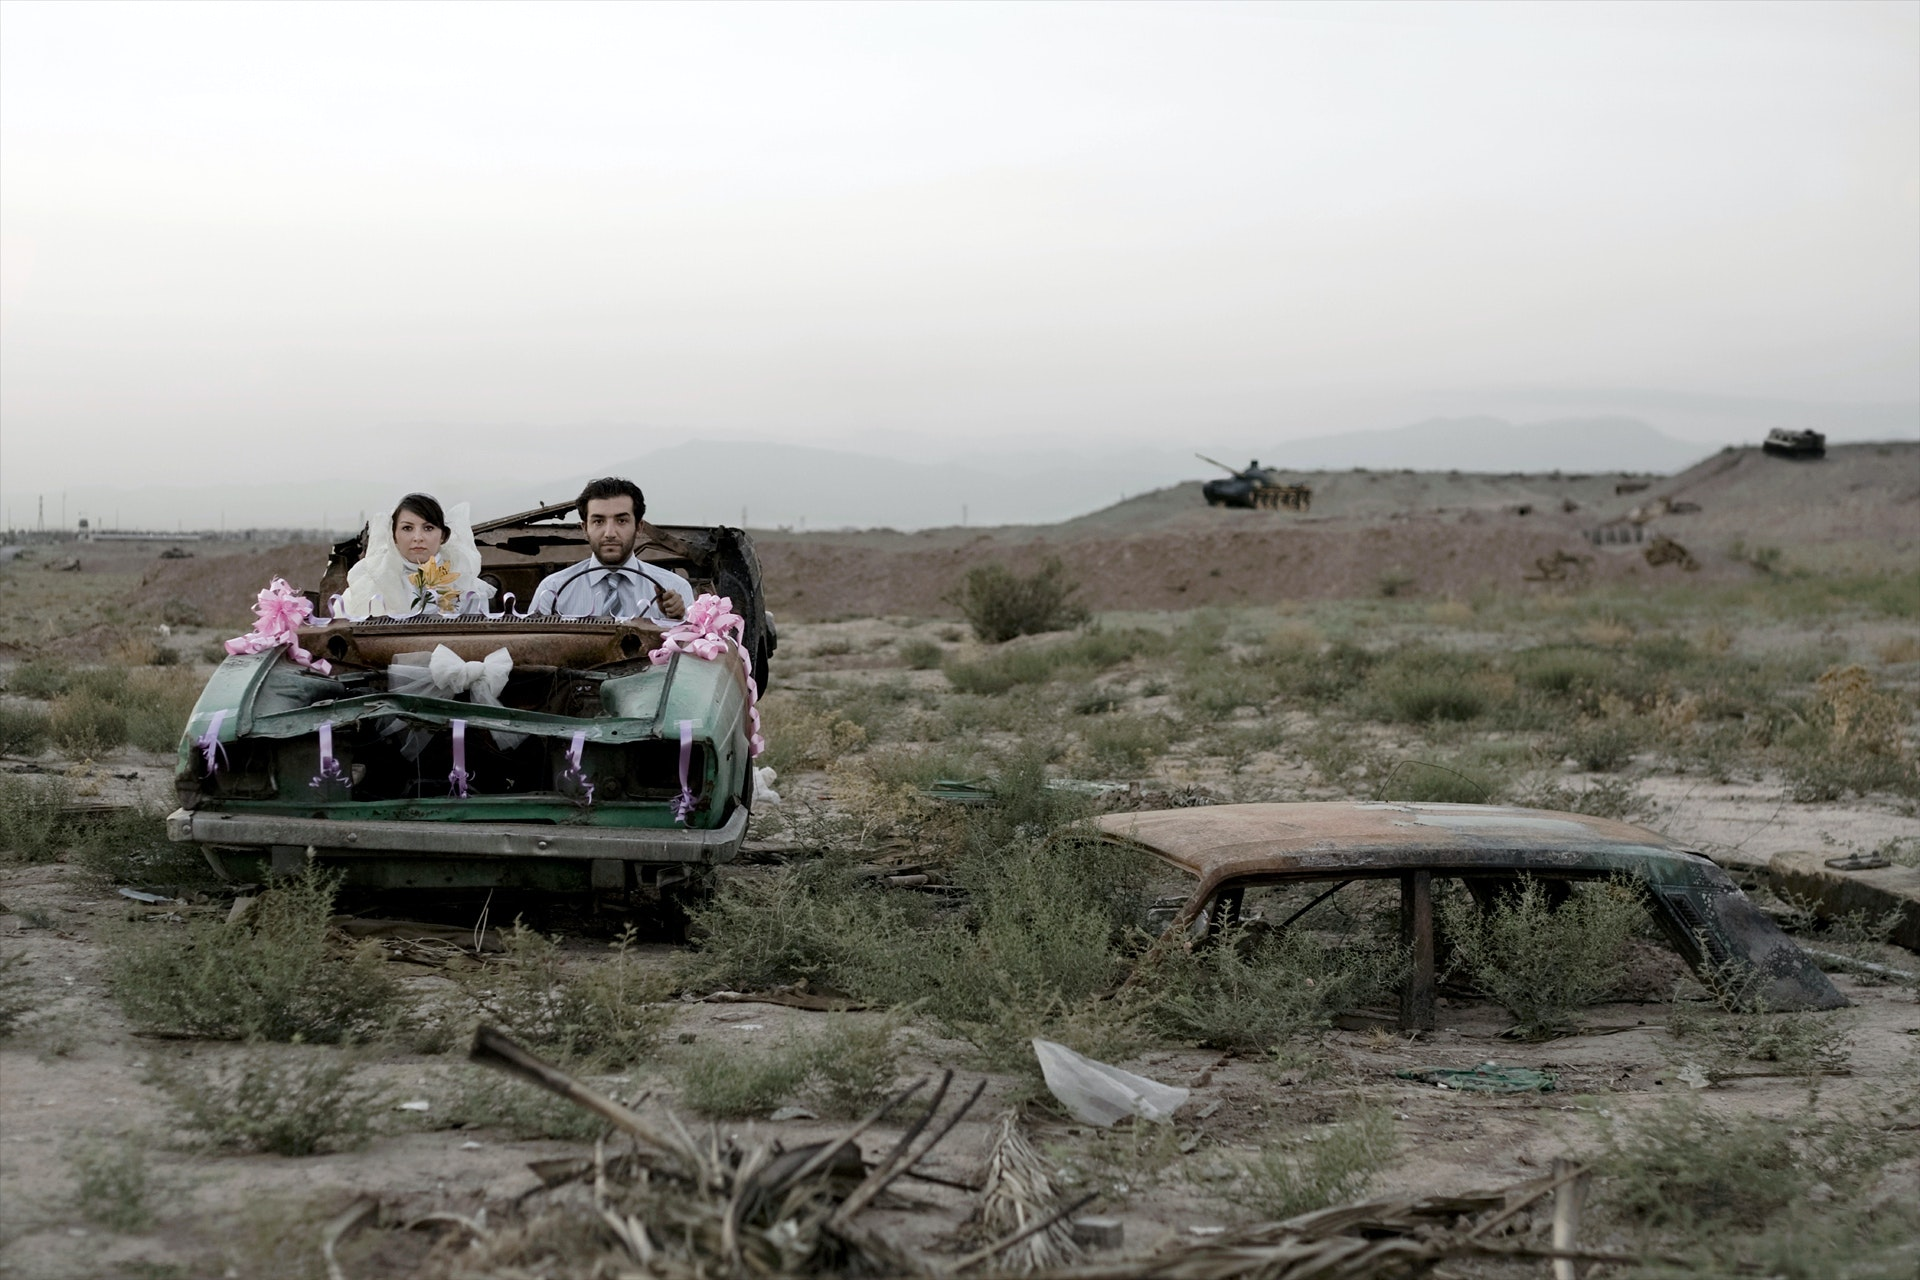 3-©Gohar-Dashti-Today's-Life-and-War-(3)-105&70cm---2008